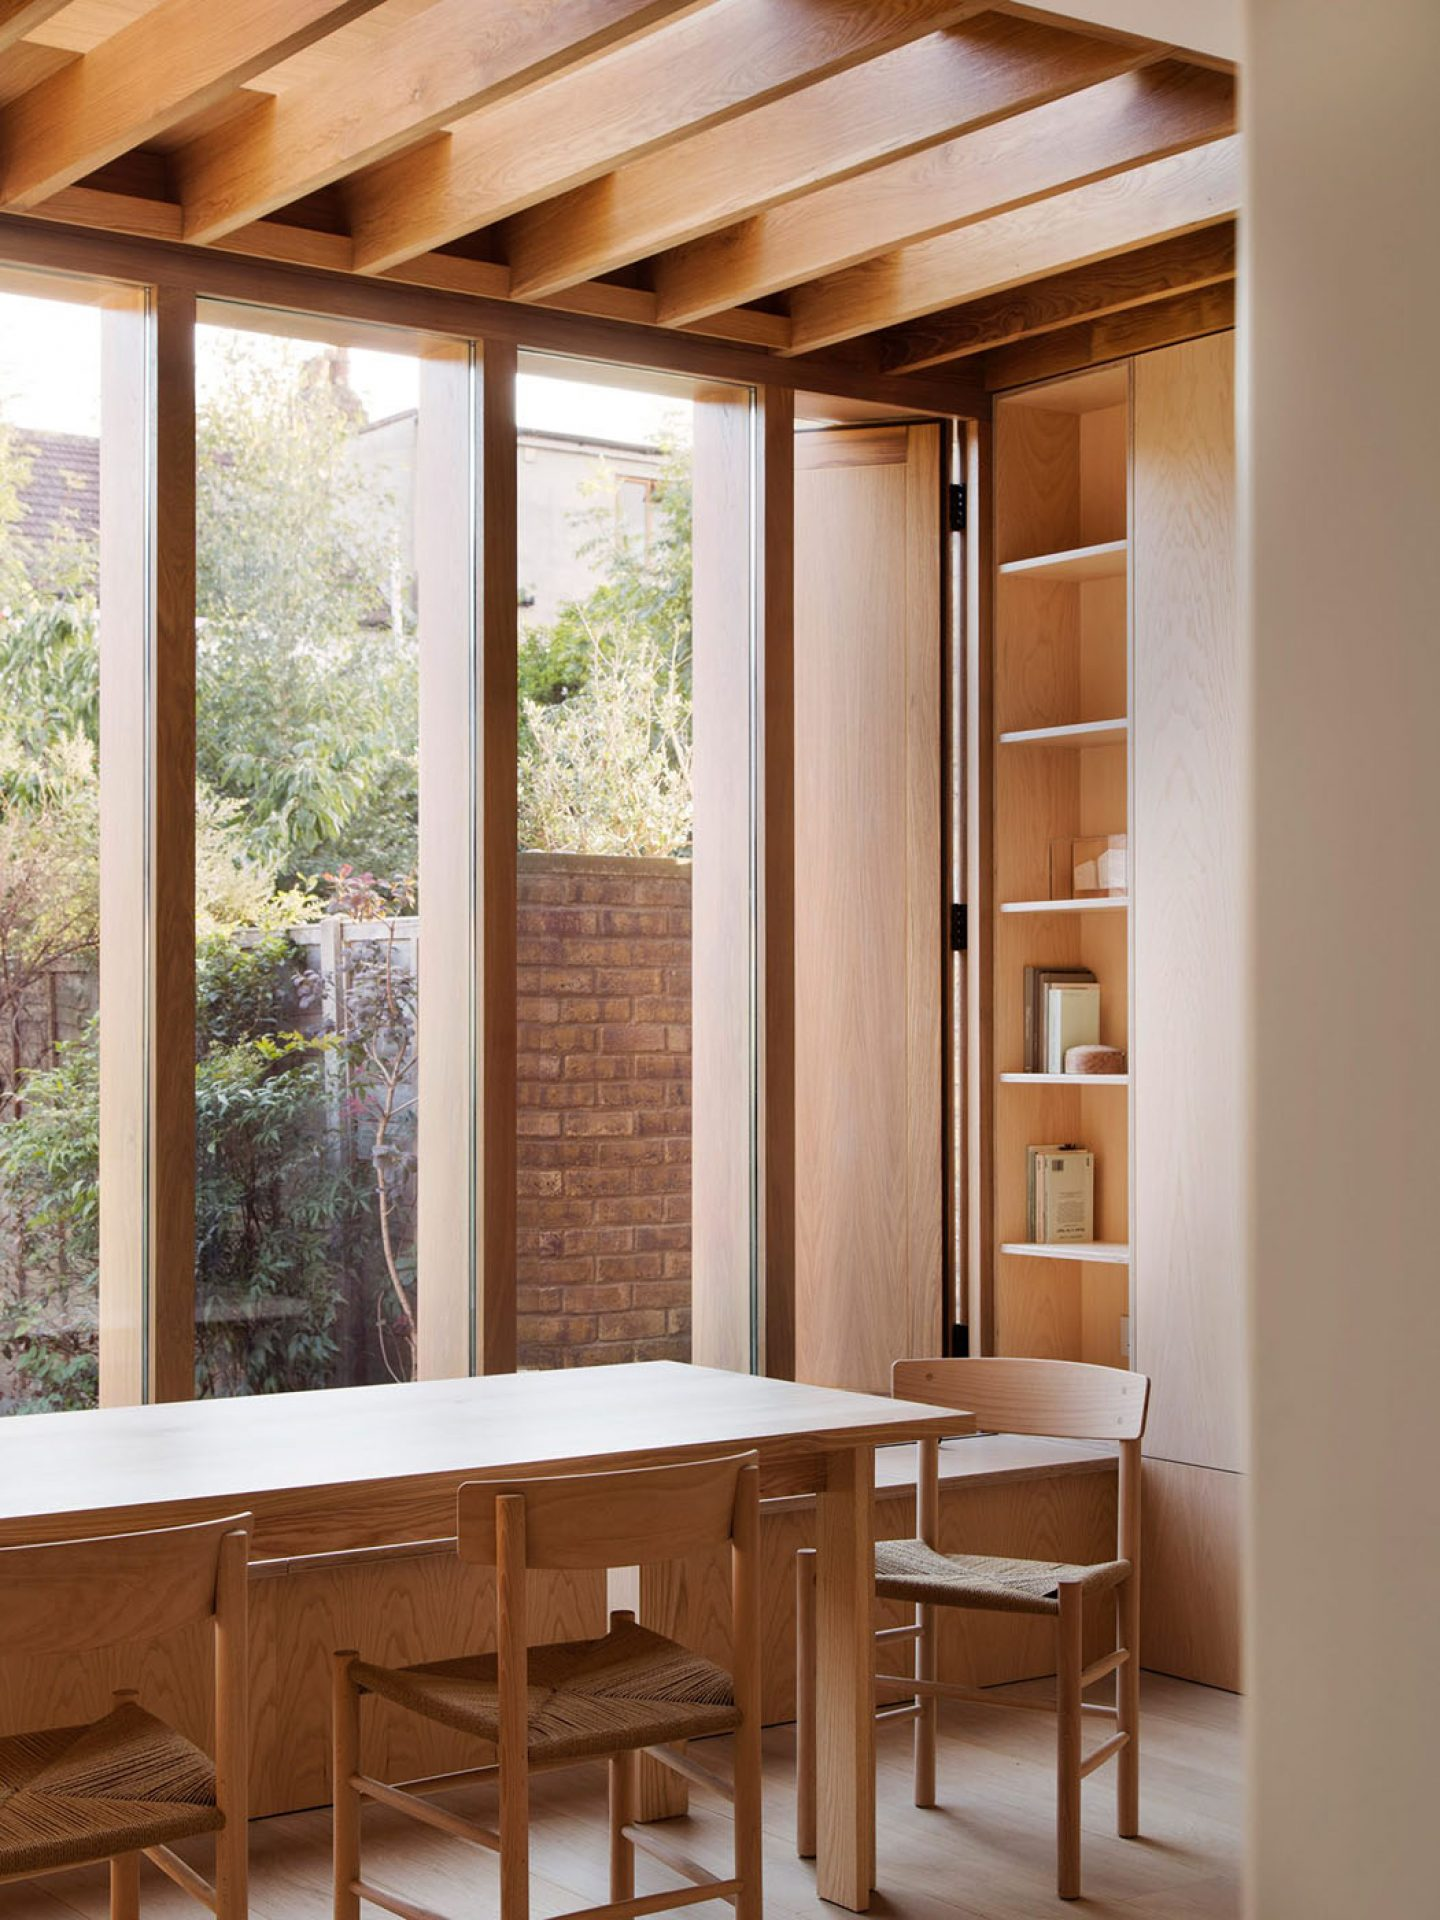 iGNANT-Architecture-O'Sullivan-Skoufoglou-Architects-Extension-London-3